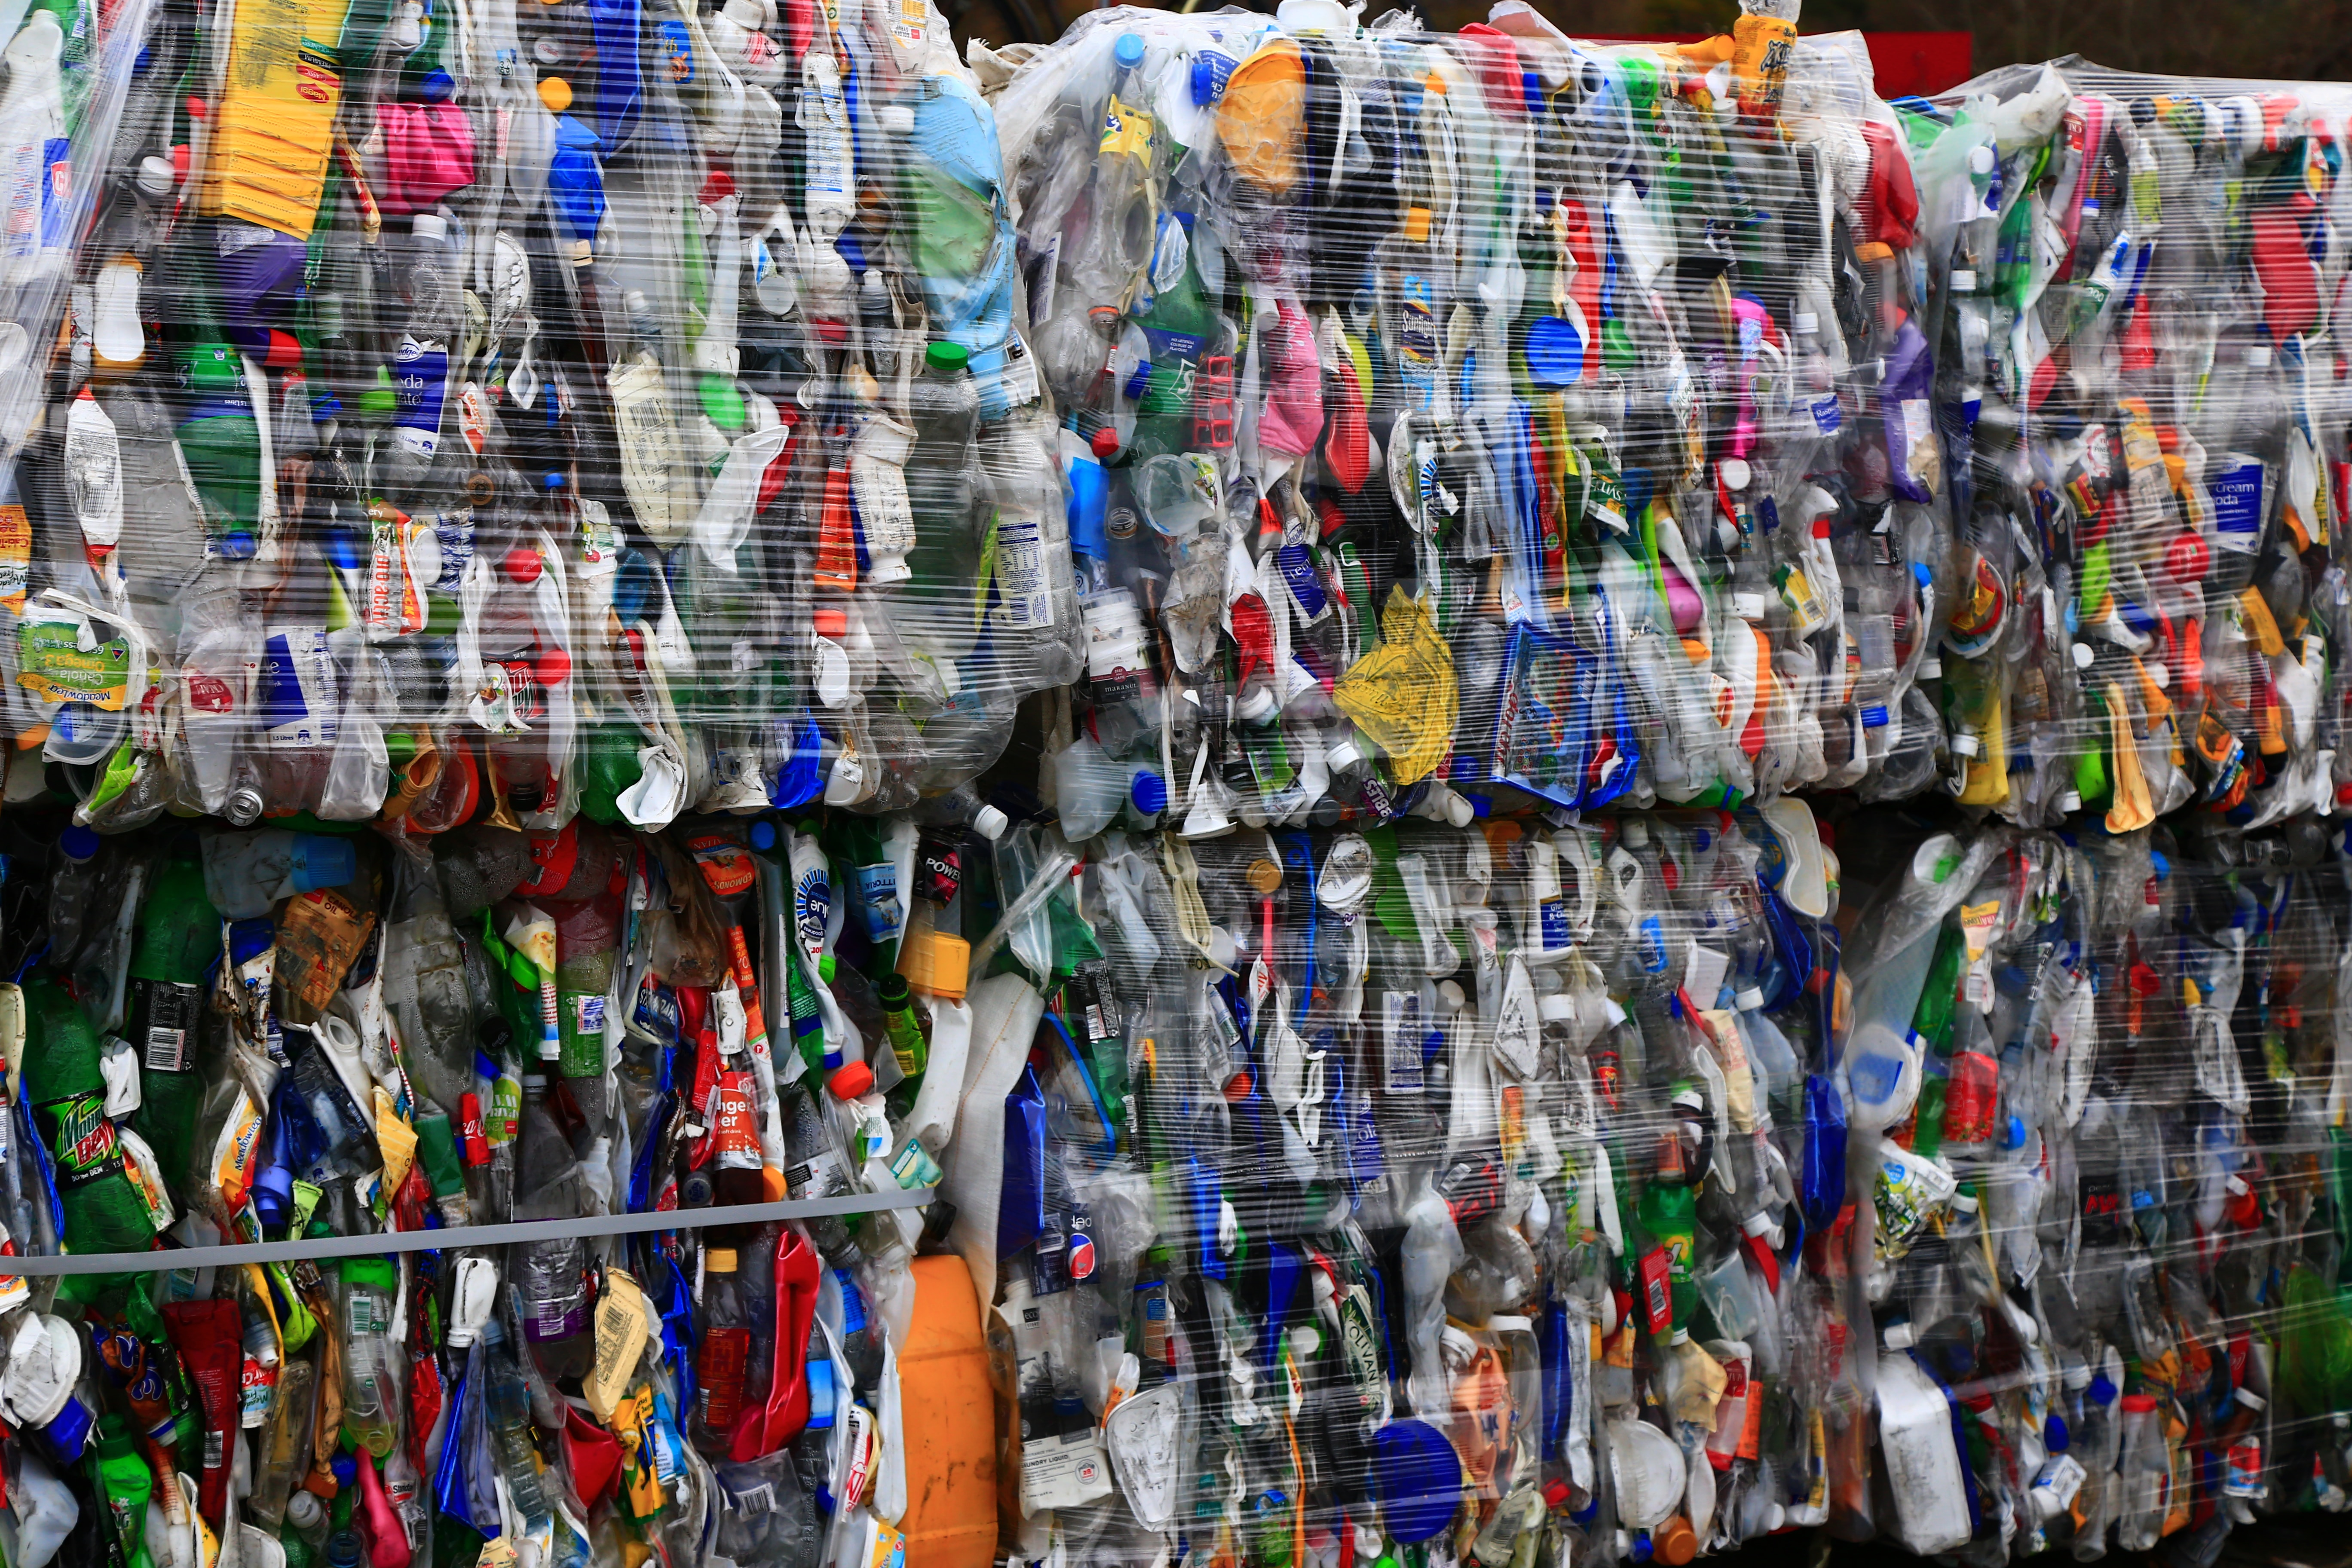 Bales of used plastic containers tightly packed for their journey to be recycled.